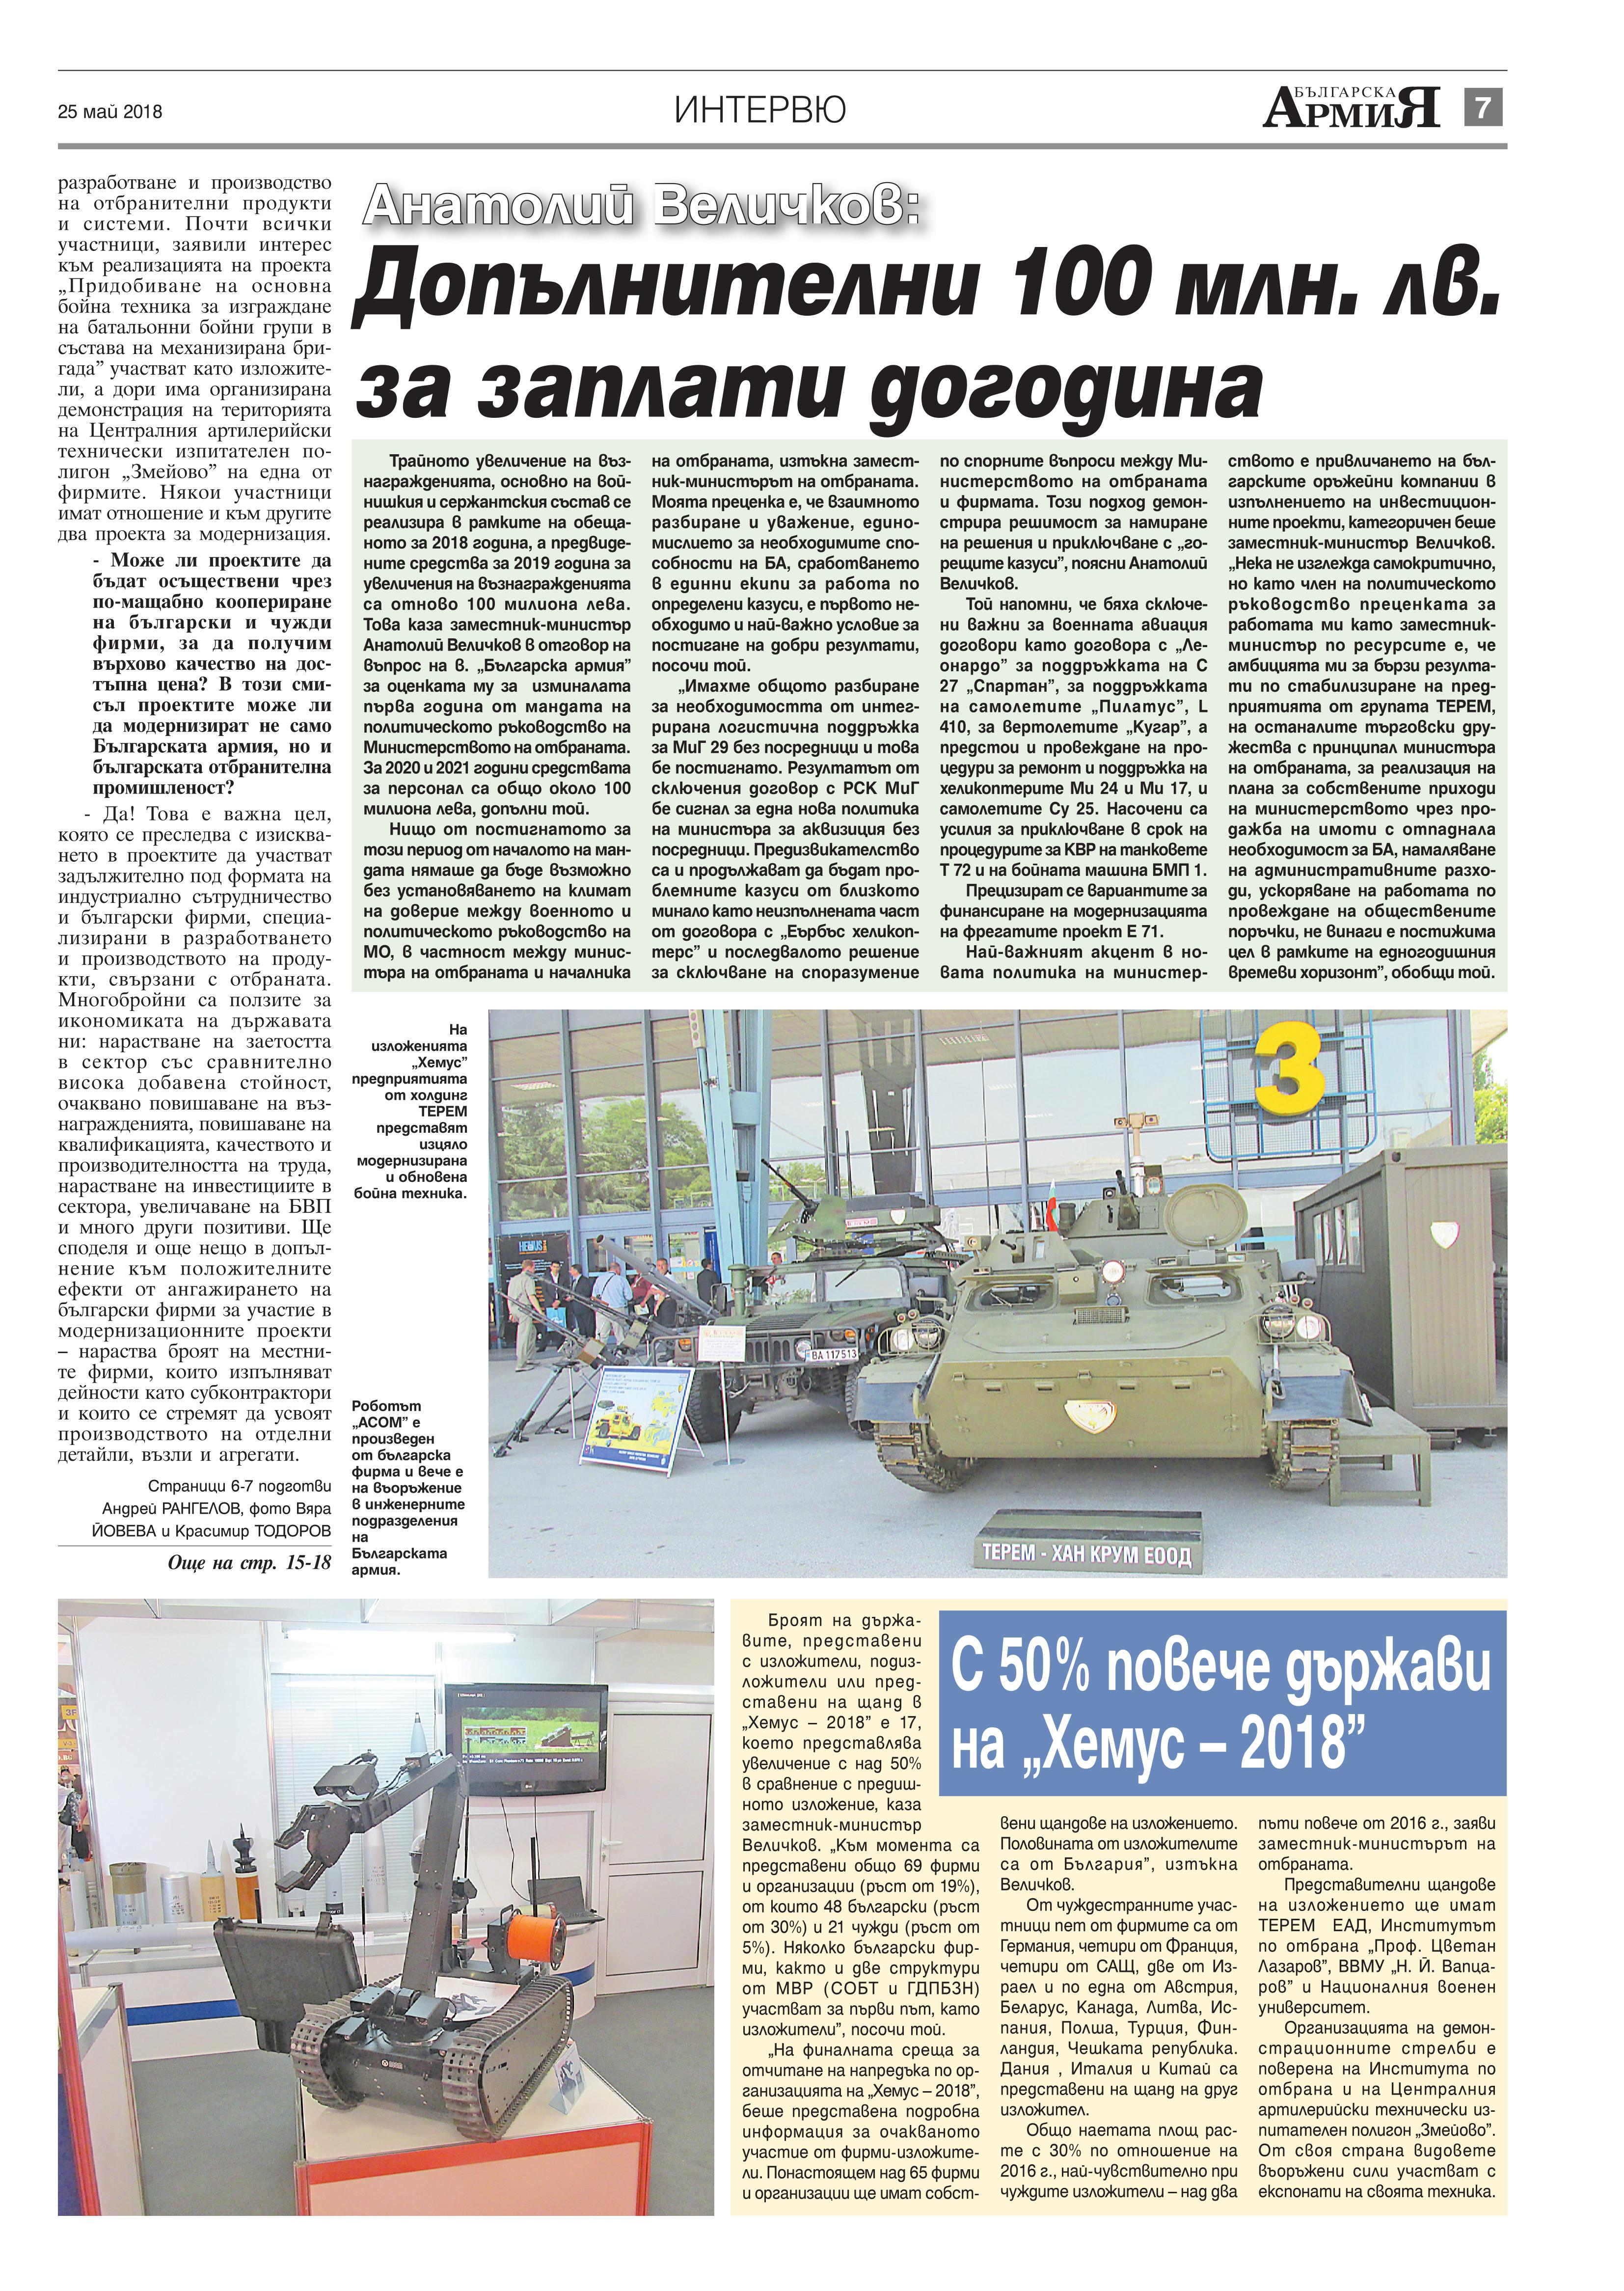 https://armymedia.bg/wp-content/uploads/2015/06/07.page1_-49.jpg